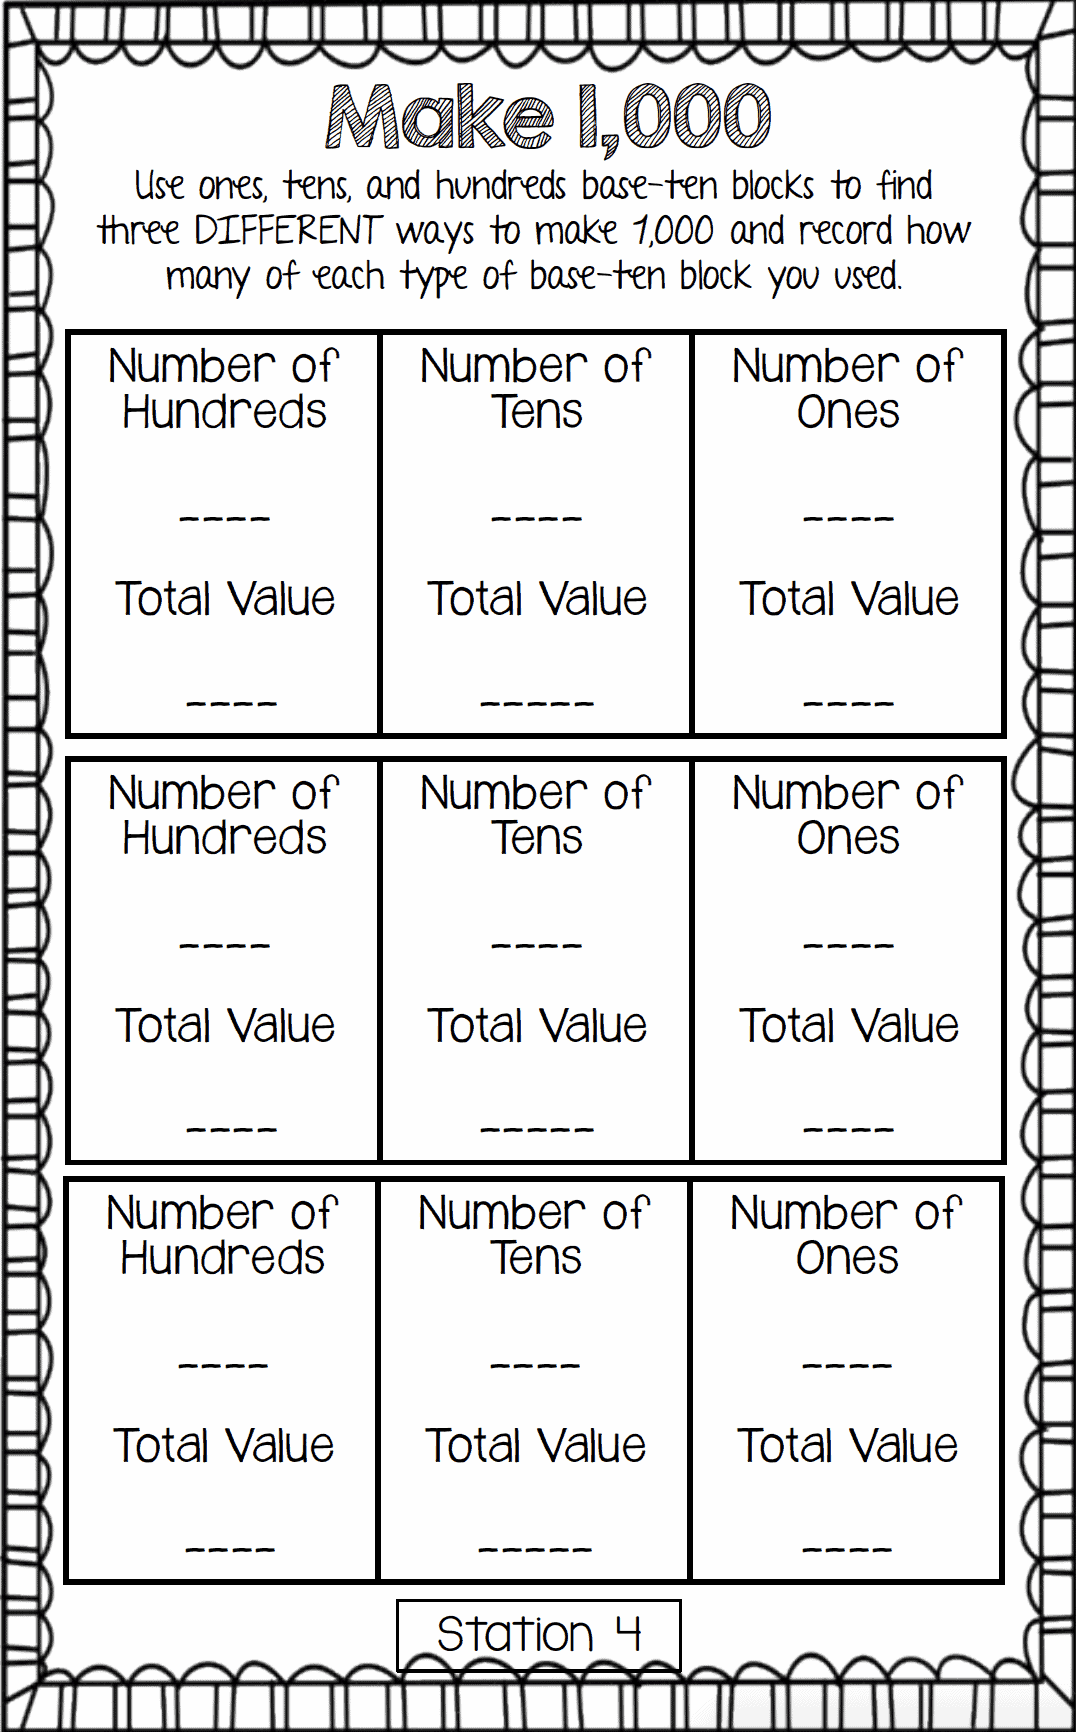 Place value is a really foundational math skill in 3rd grade, 4th grade, and 5th grade. However, it's always good to review place value concepts at the beginning of the new school year or for test prep before state testing. I'm sharing some fun hands-on place value activities in this blog post, so click through to read my tips for upper elementary math teachers!